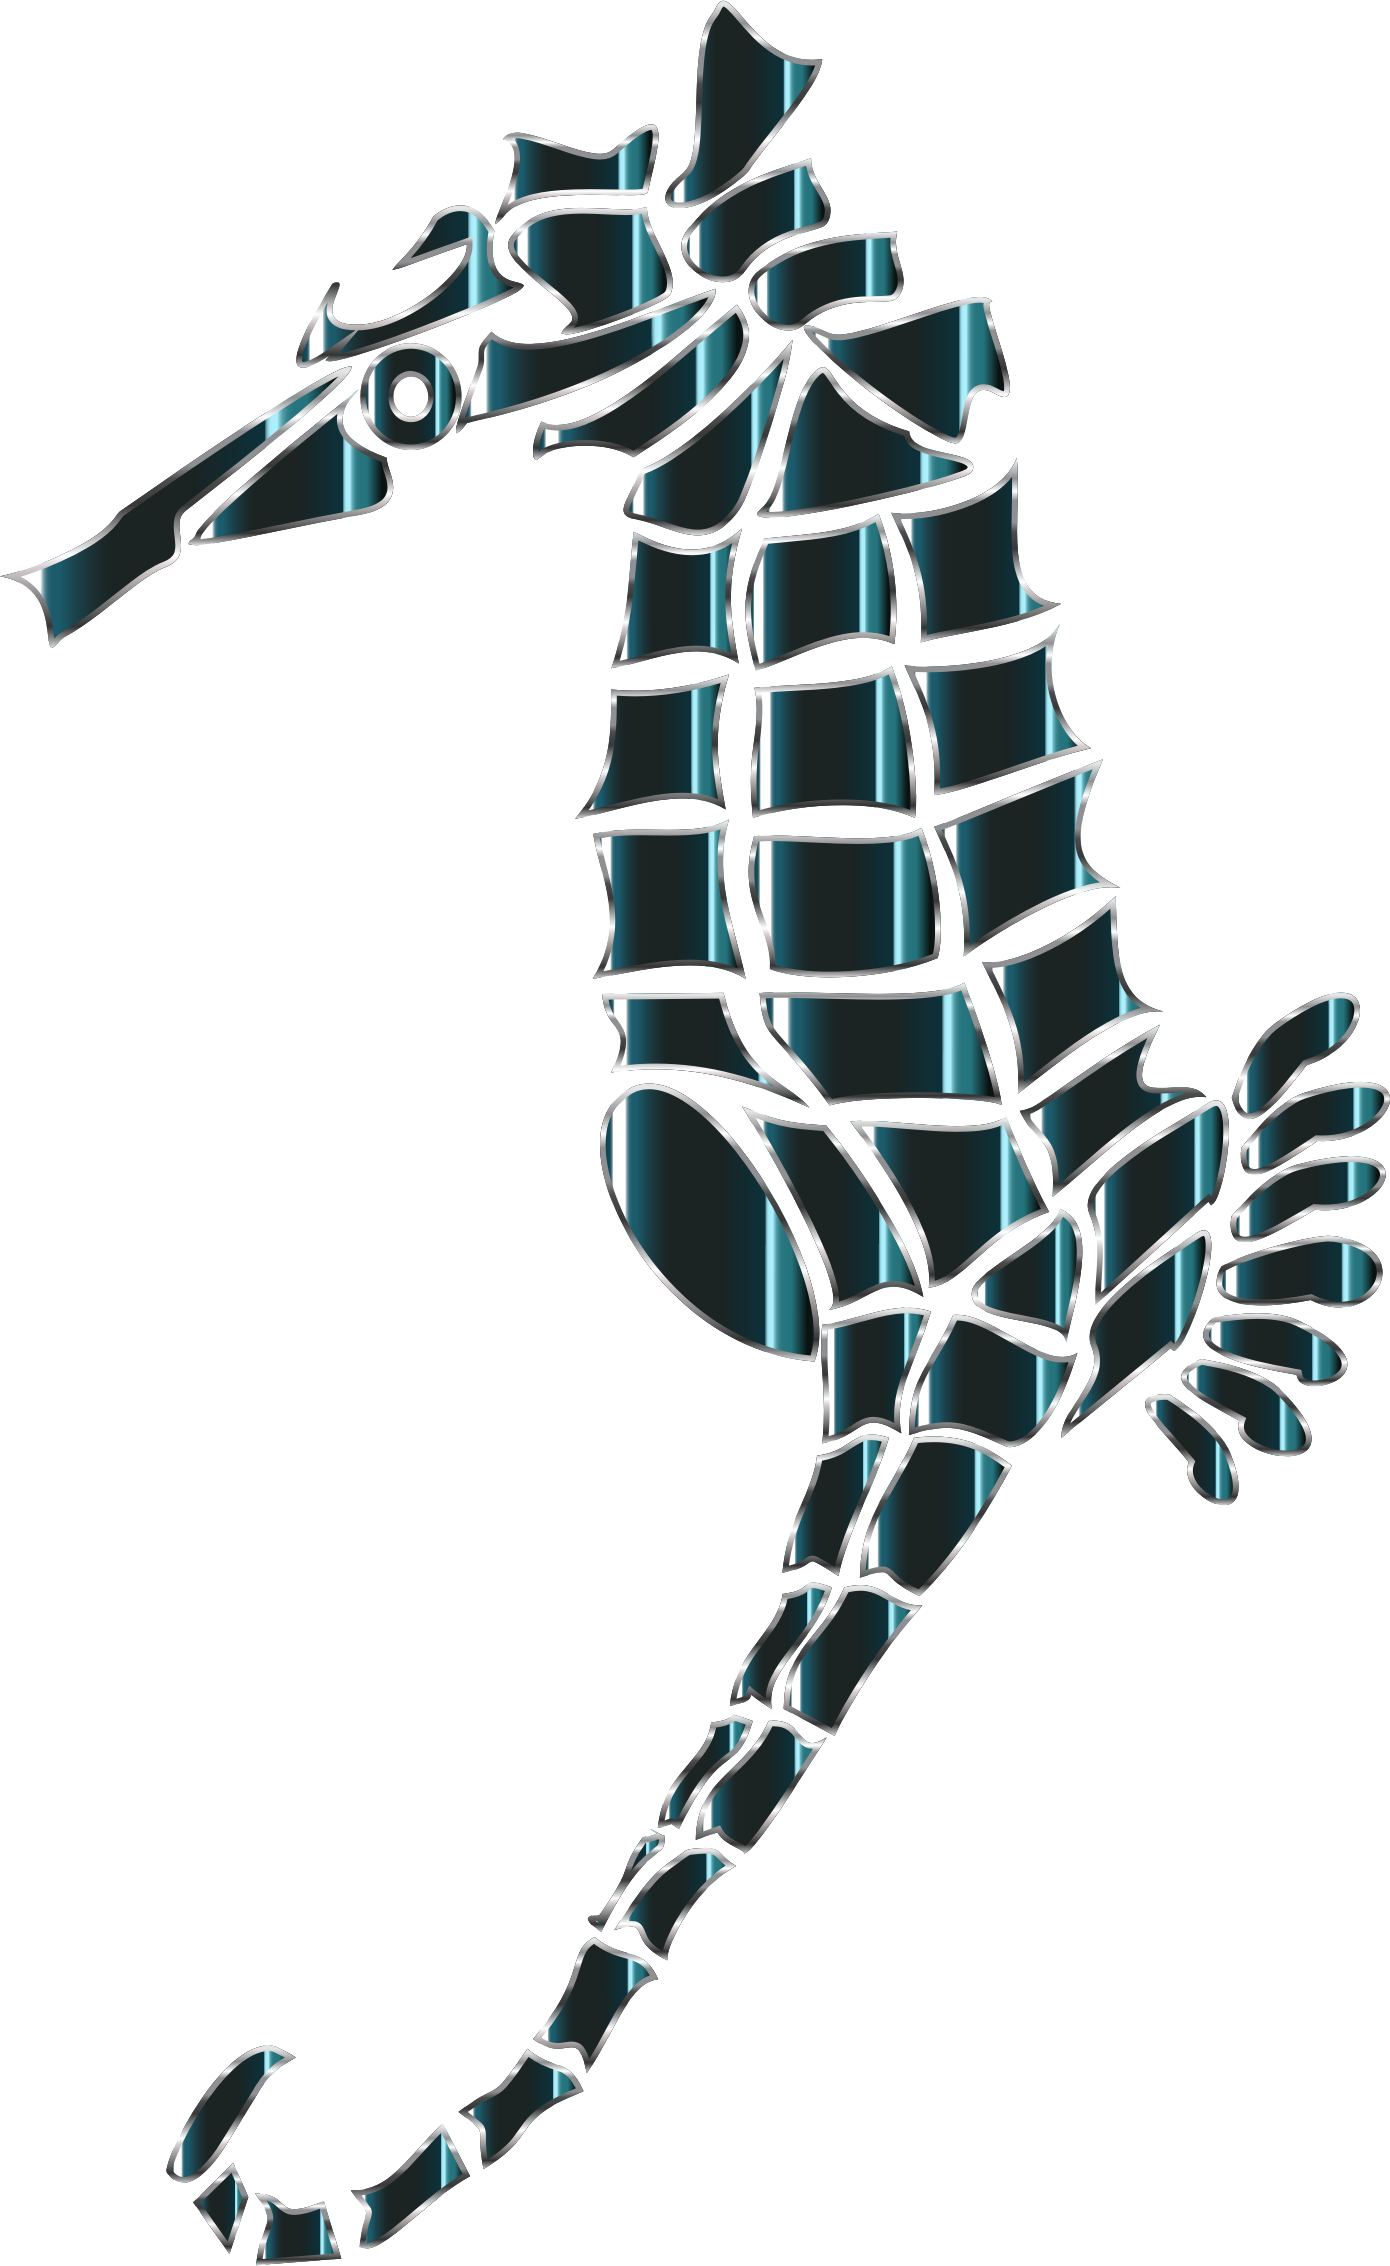 Bioluminescent Stylized Seahorse Silhouette No Background by GDJ